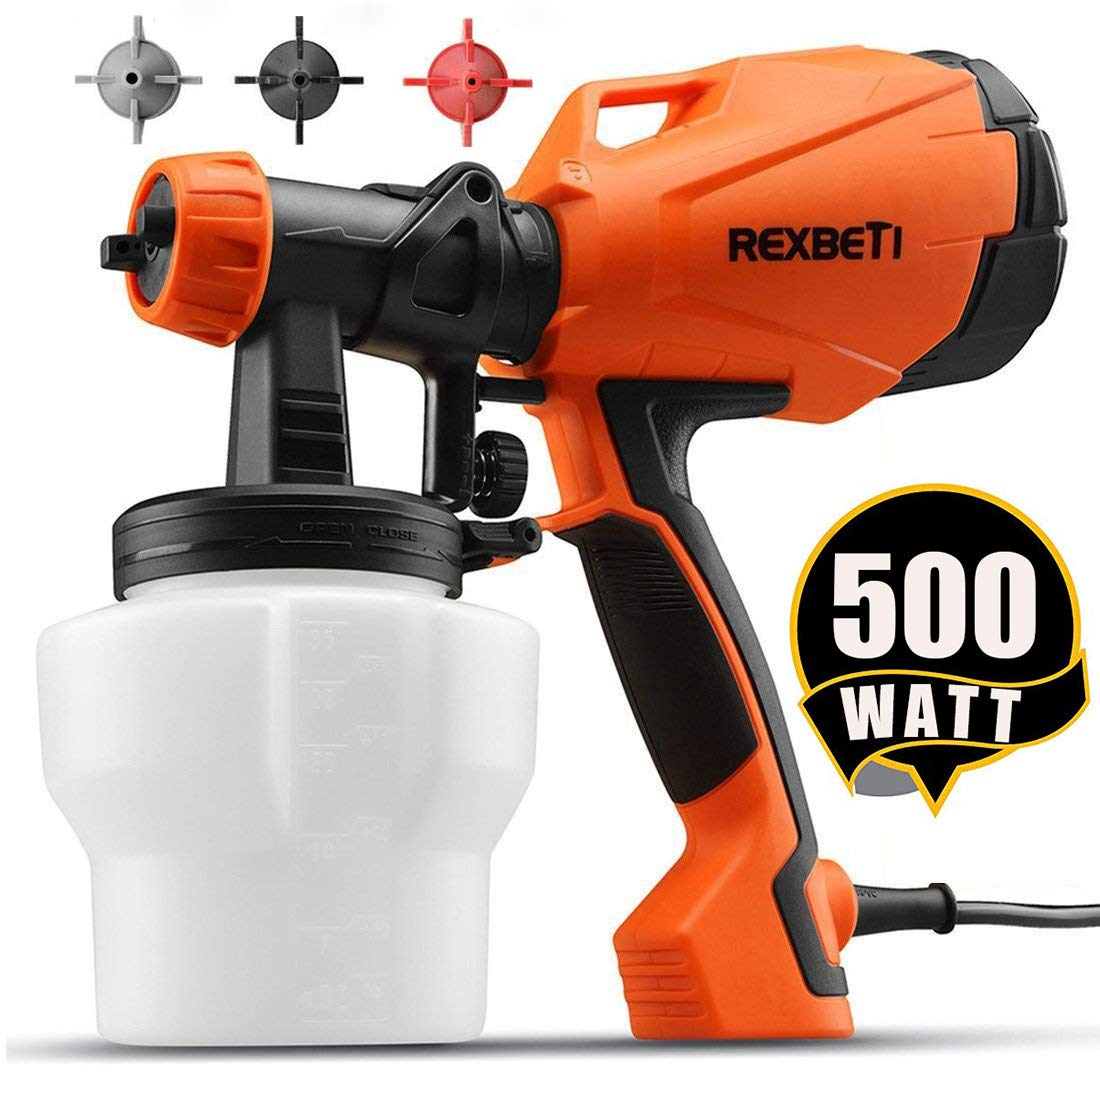 REXBETI Ultimate-750 Paint Sprayer, 500 Watt High Power HVLP Home Electric Spray Gun, 3 Nozzle Sizes, Lightweight, Easy Spraying and Cleaning, Perfect for Beginner by REXBETI